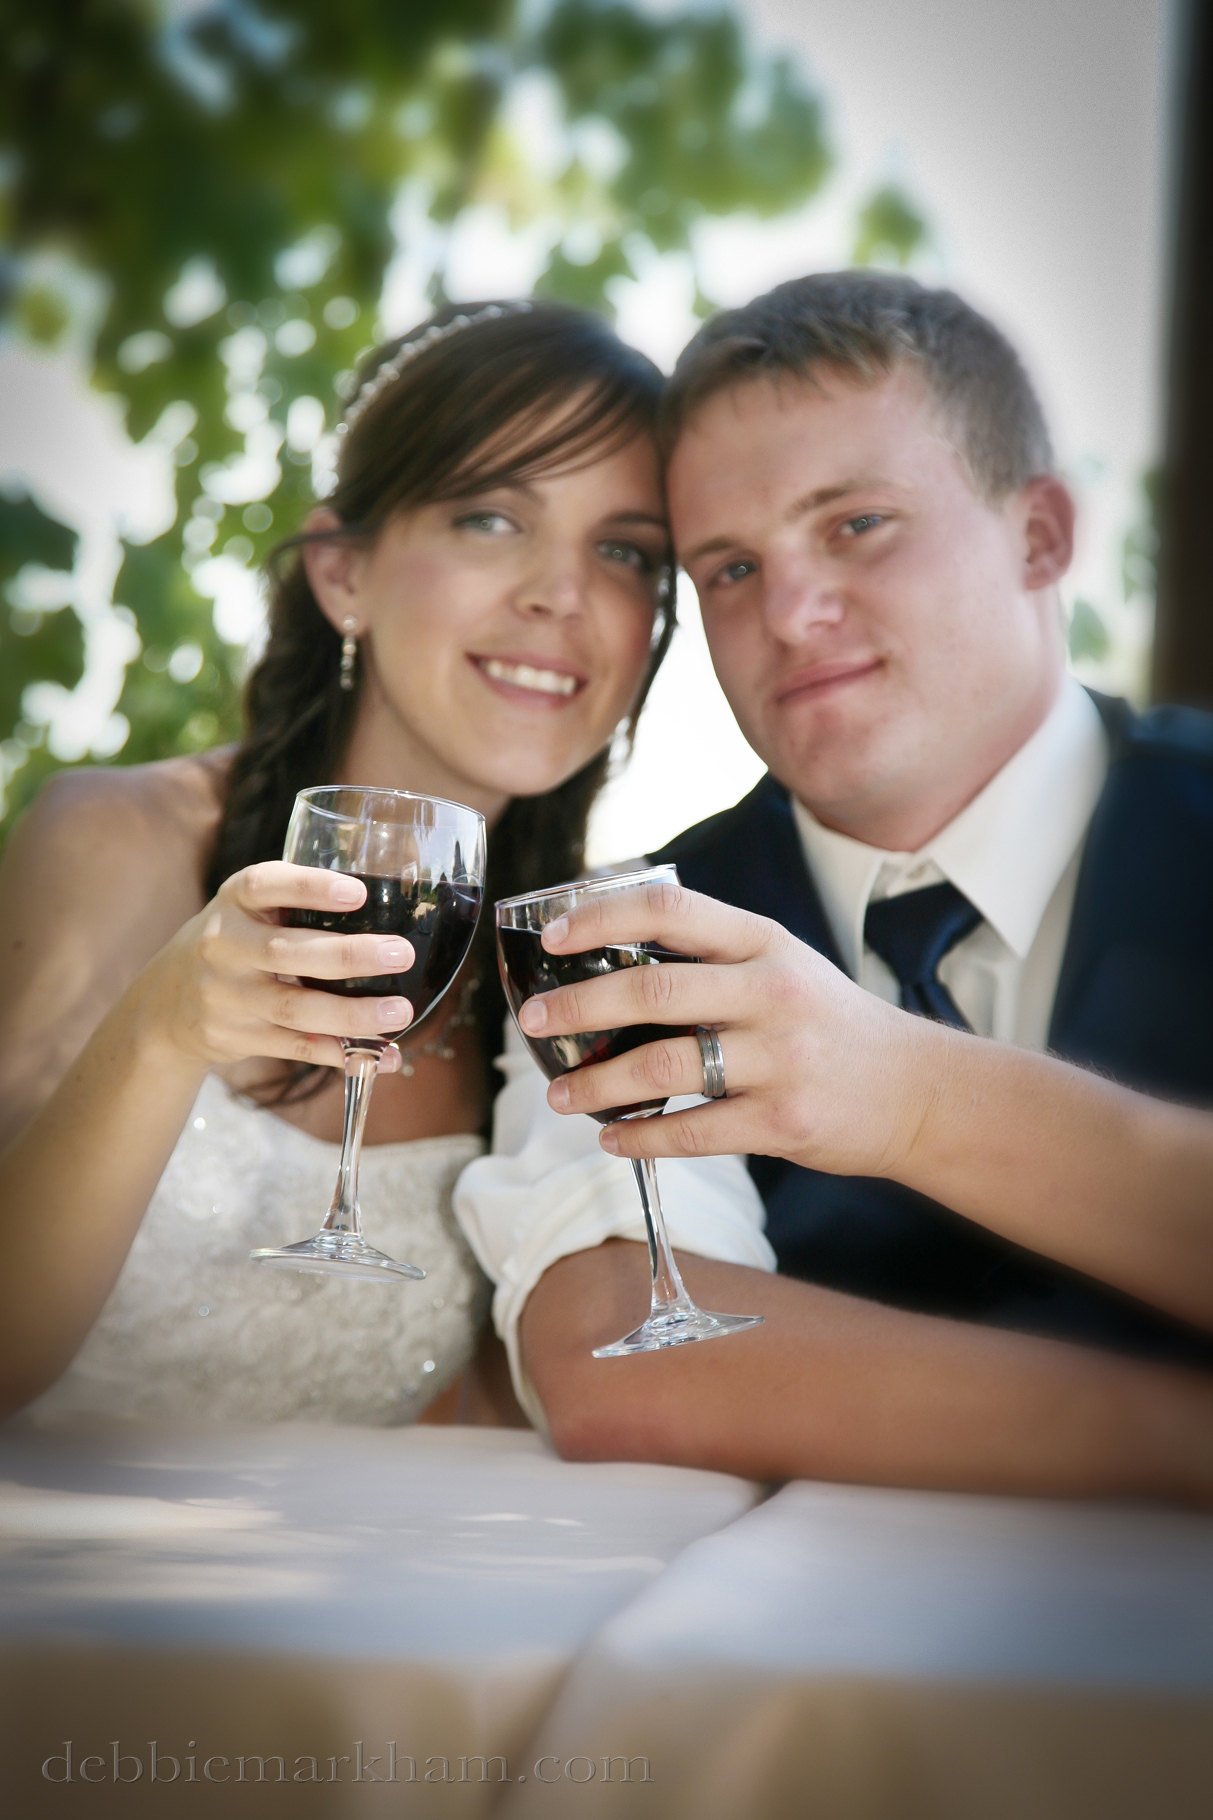 Cambria Photographer Debbie Markham-Paso Robles Wine Country Wedding at Castoro Winery-Bride and Groom Toast with Wine